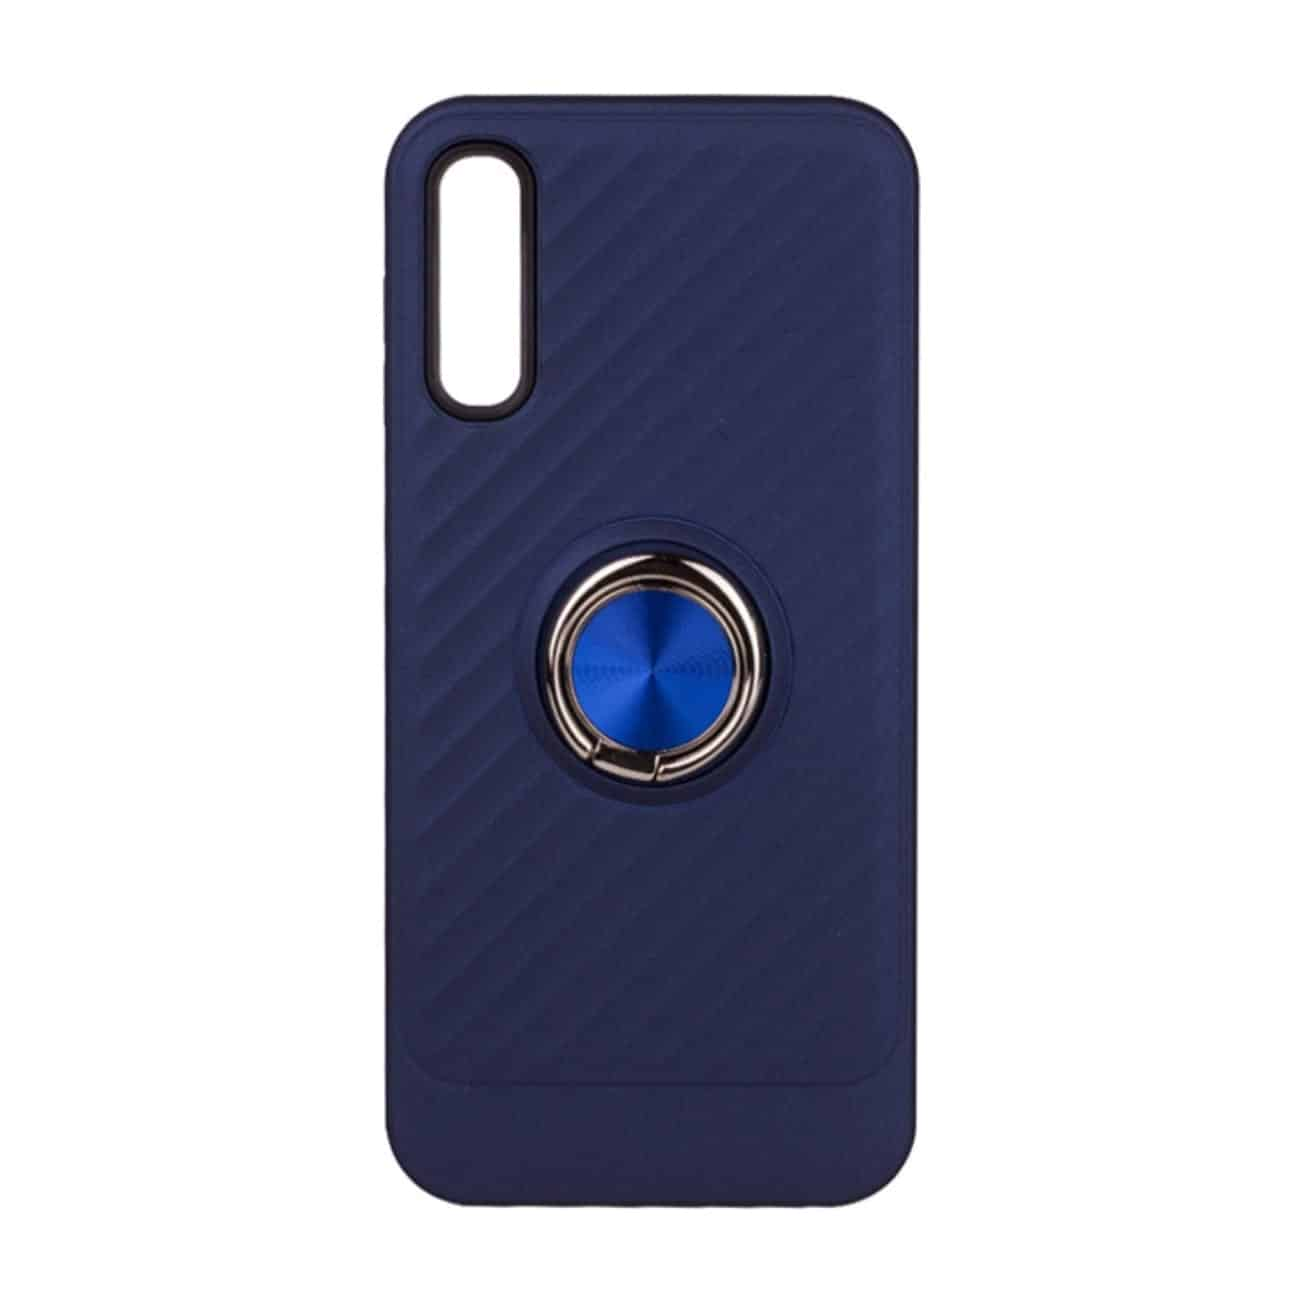 SAMSUNG GALAXY A70 Case with Ring Holder InBlue